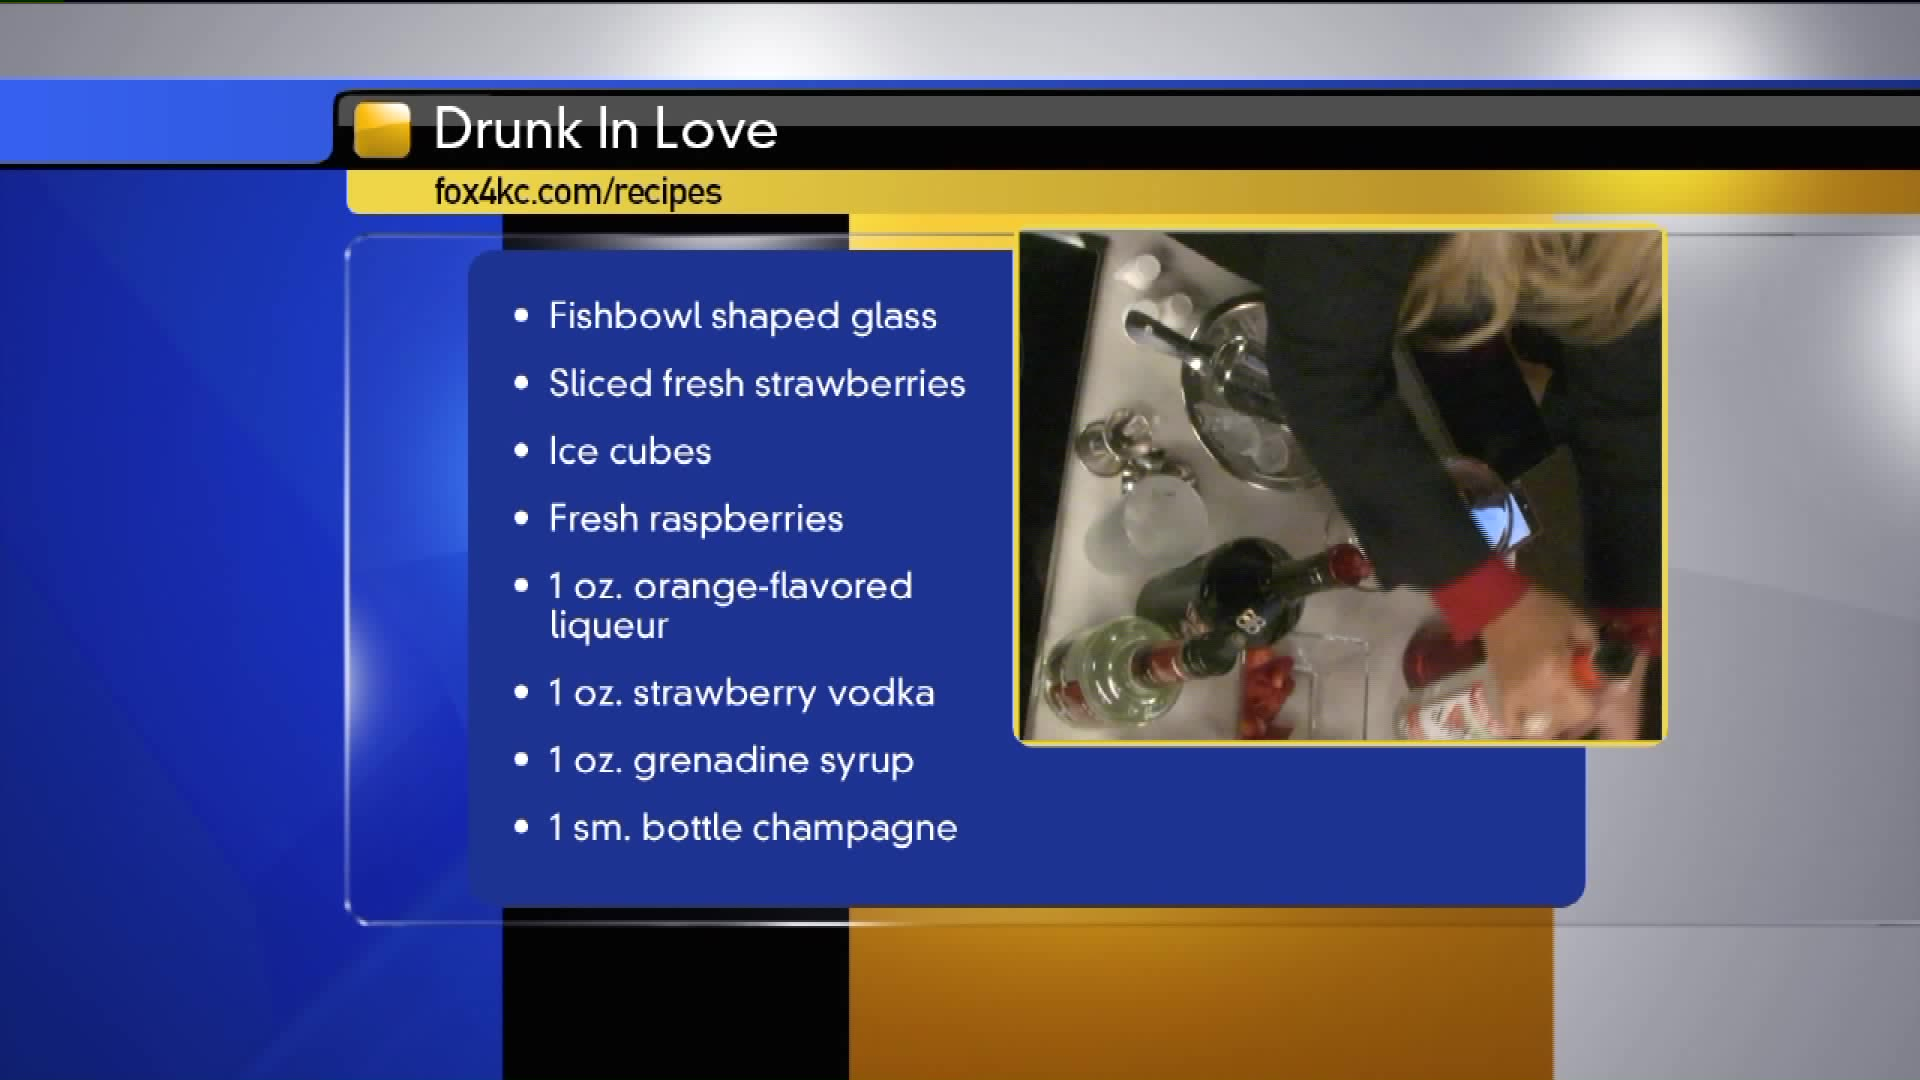 How To Make The Drunk In Love Cocktail For Valentine's Day